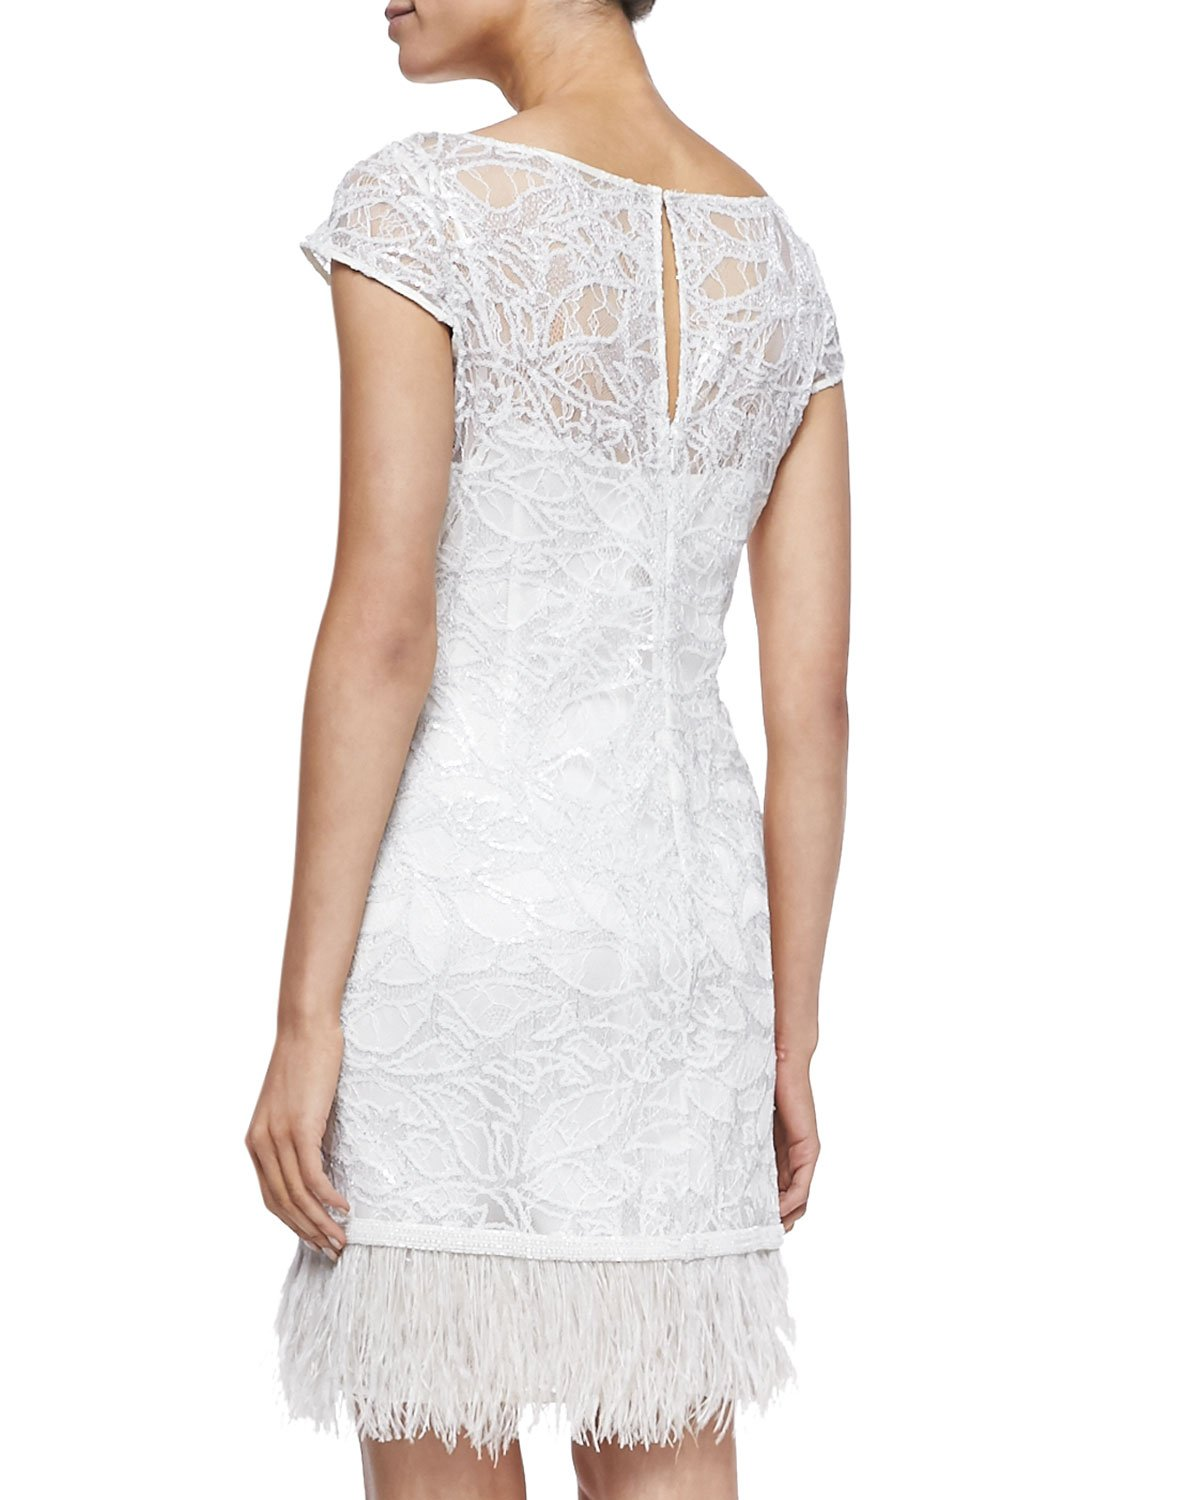 Lyst - Kay Unger Lace Overlay Cocktail Dress W/ Feather Hem in White